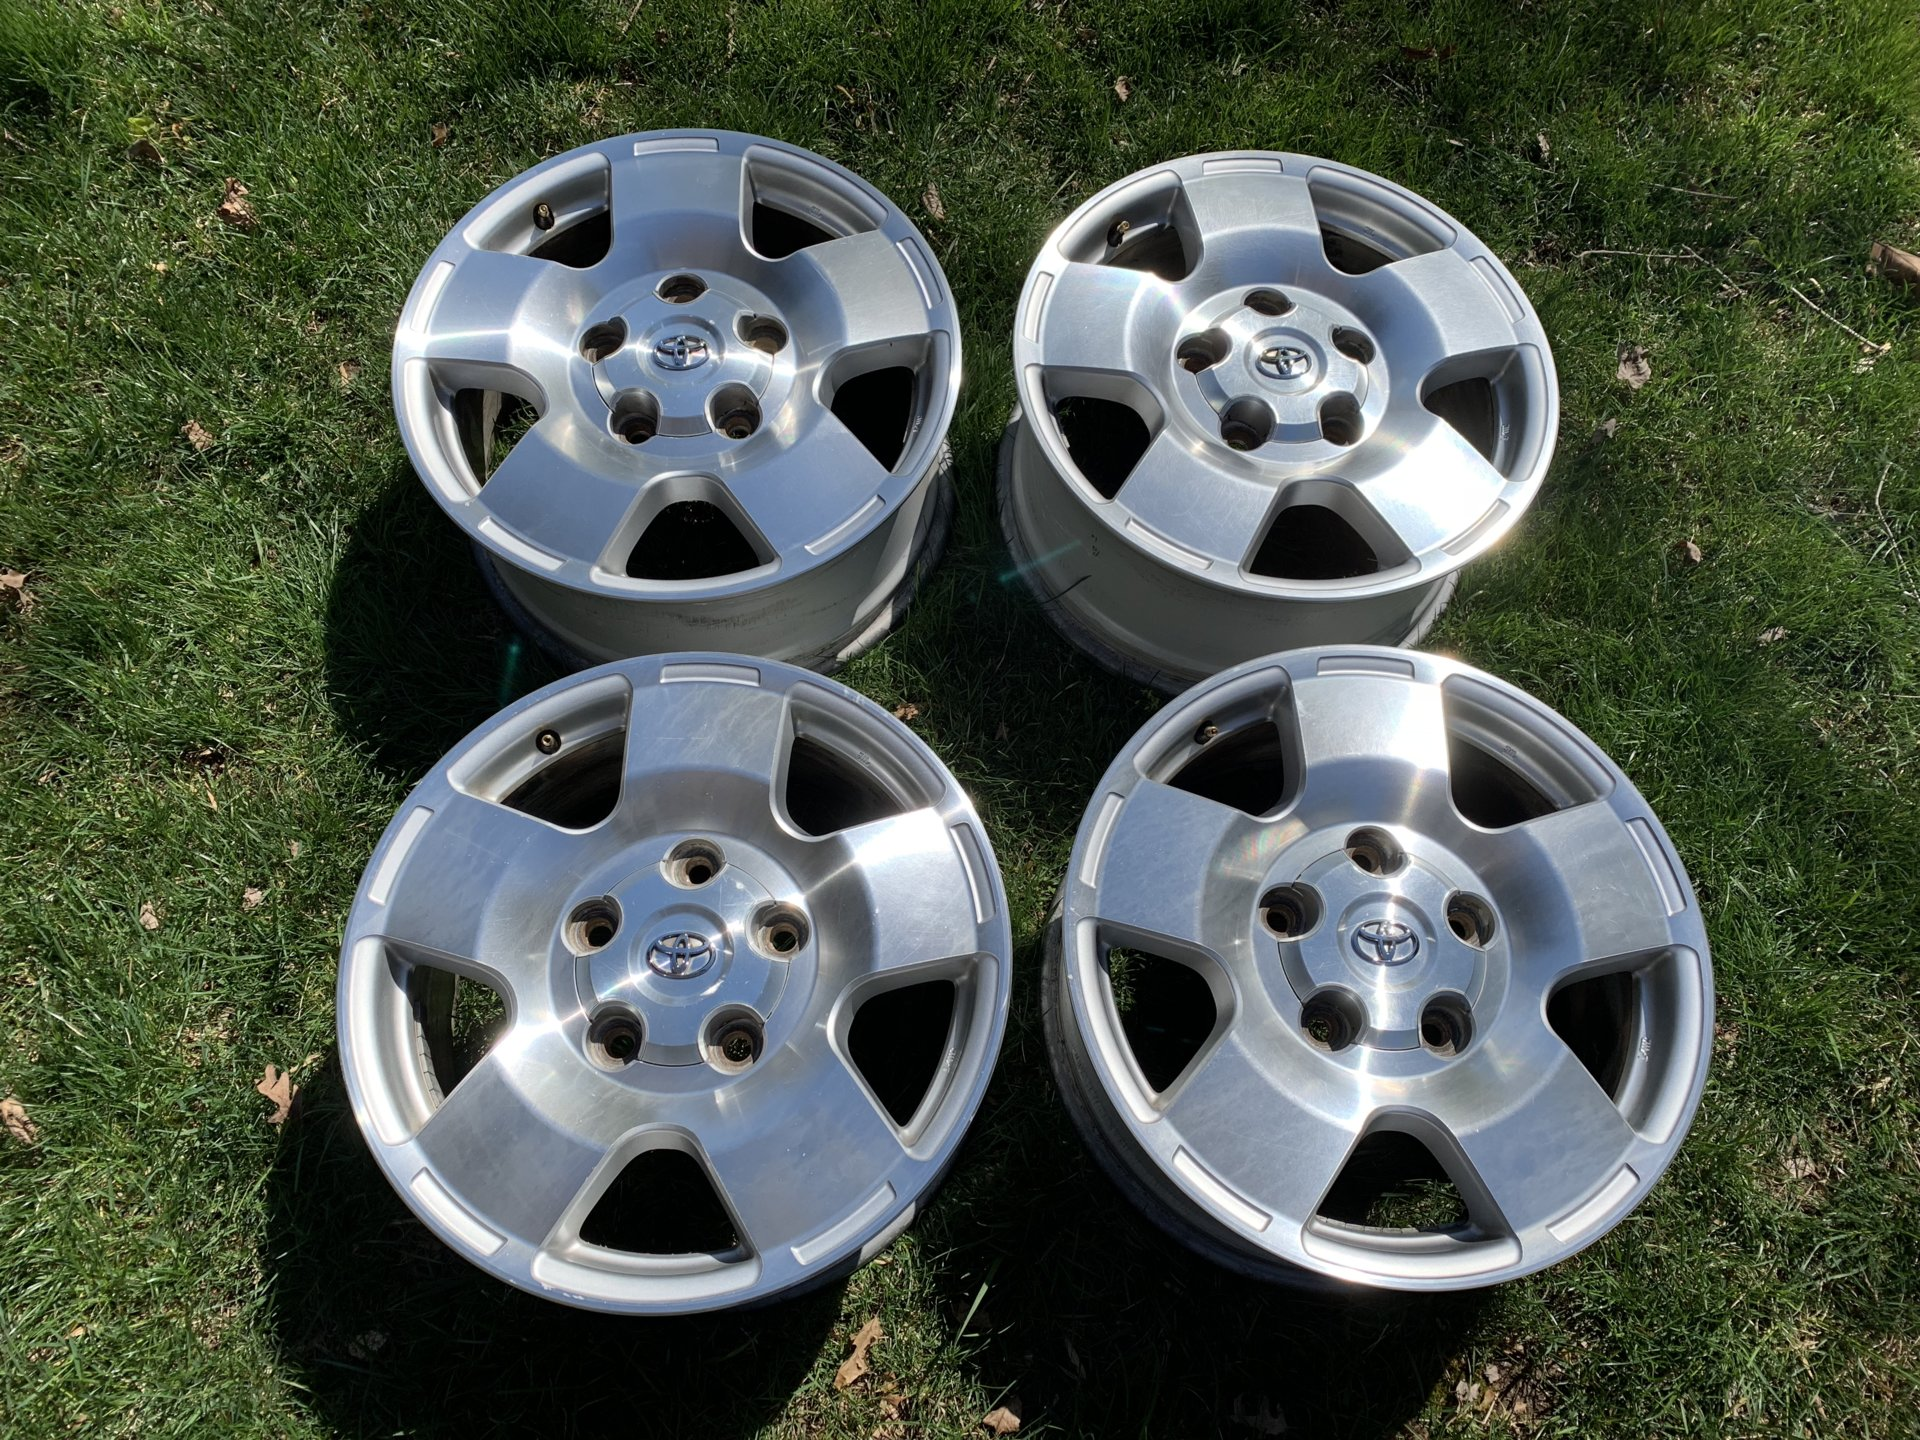 """2016 Lexus Lx 570 For Sale >> For Sale - Maryland: SET OF 4 OEM 18"""" 5x150 Alloy Tundra Wheels (Fits 07+ Tundra, 1998-2007/2008 ..."""